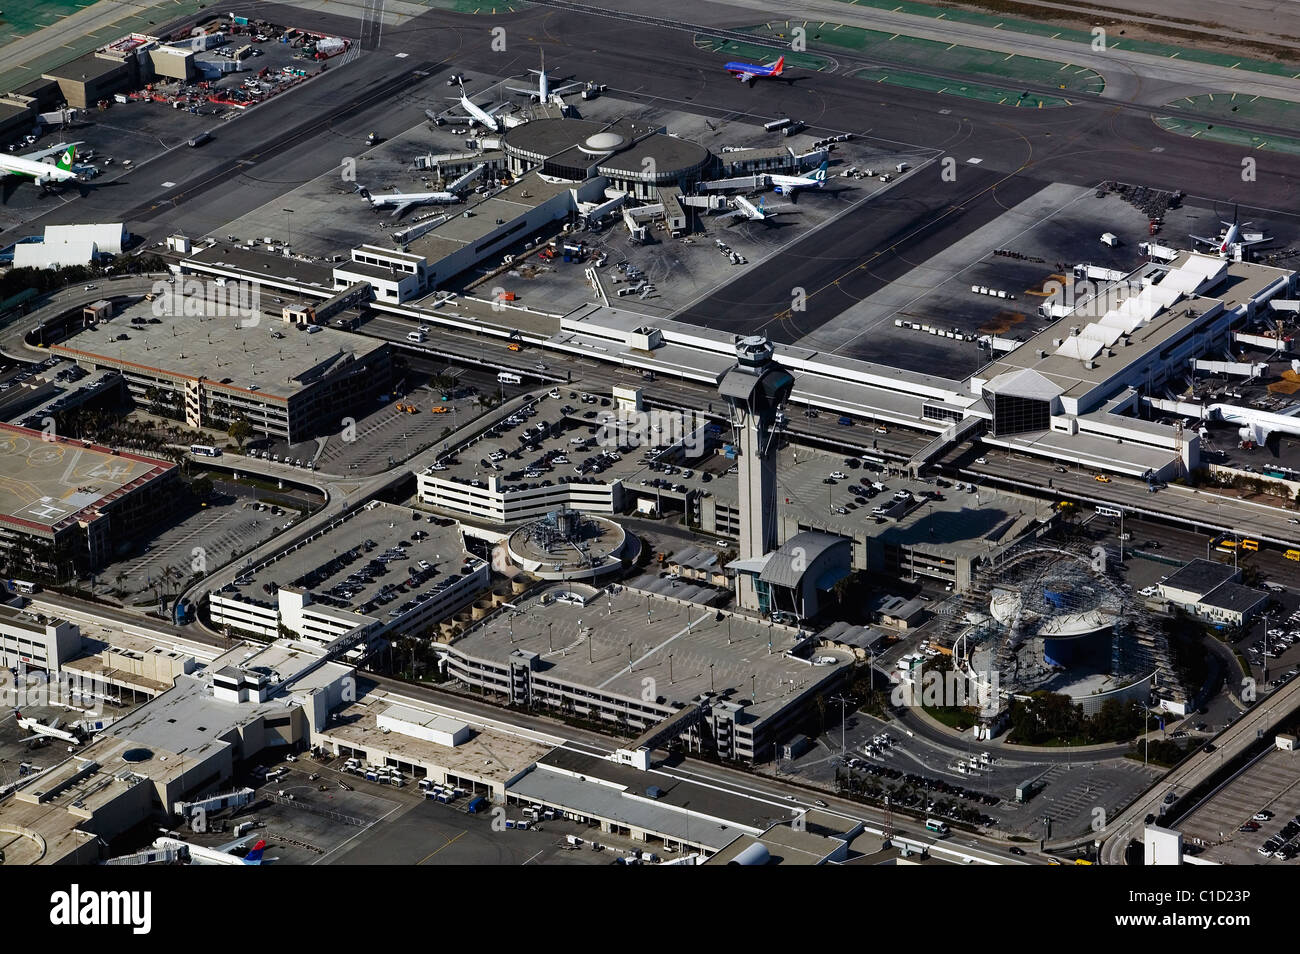 aerial view above FAA control tower Los Angeles International Airport LAX California - Stock Image